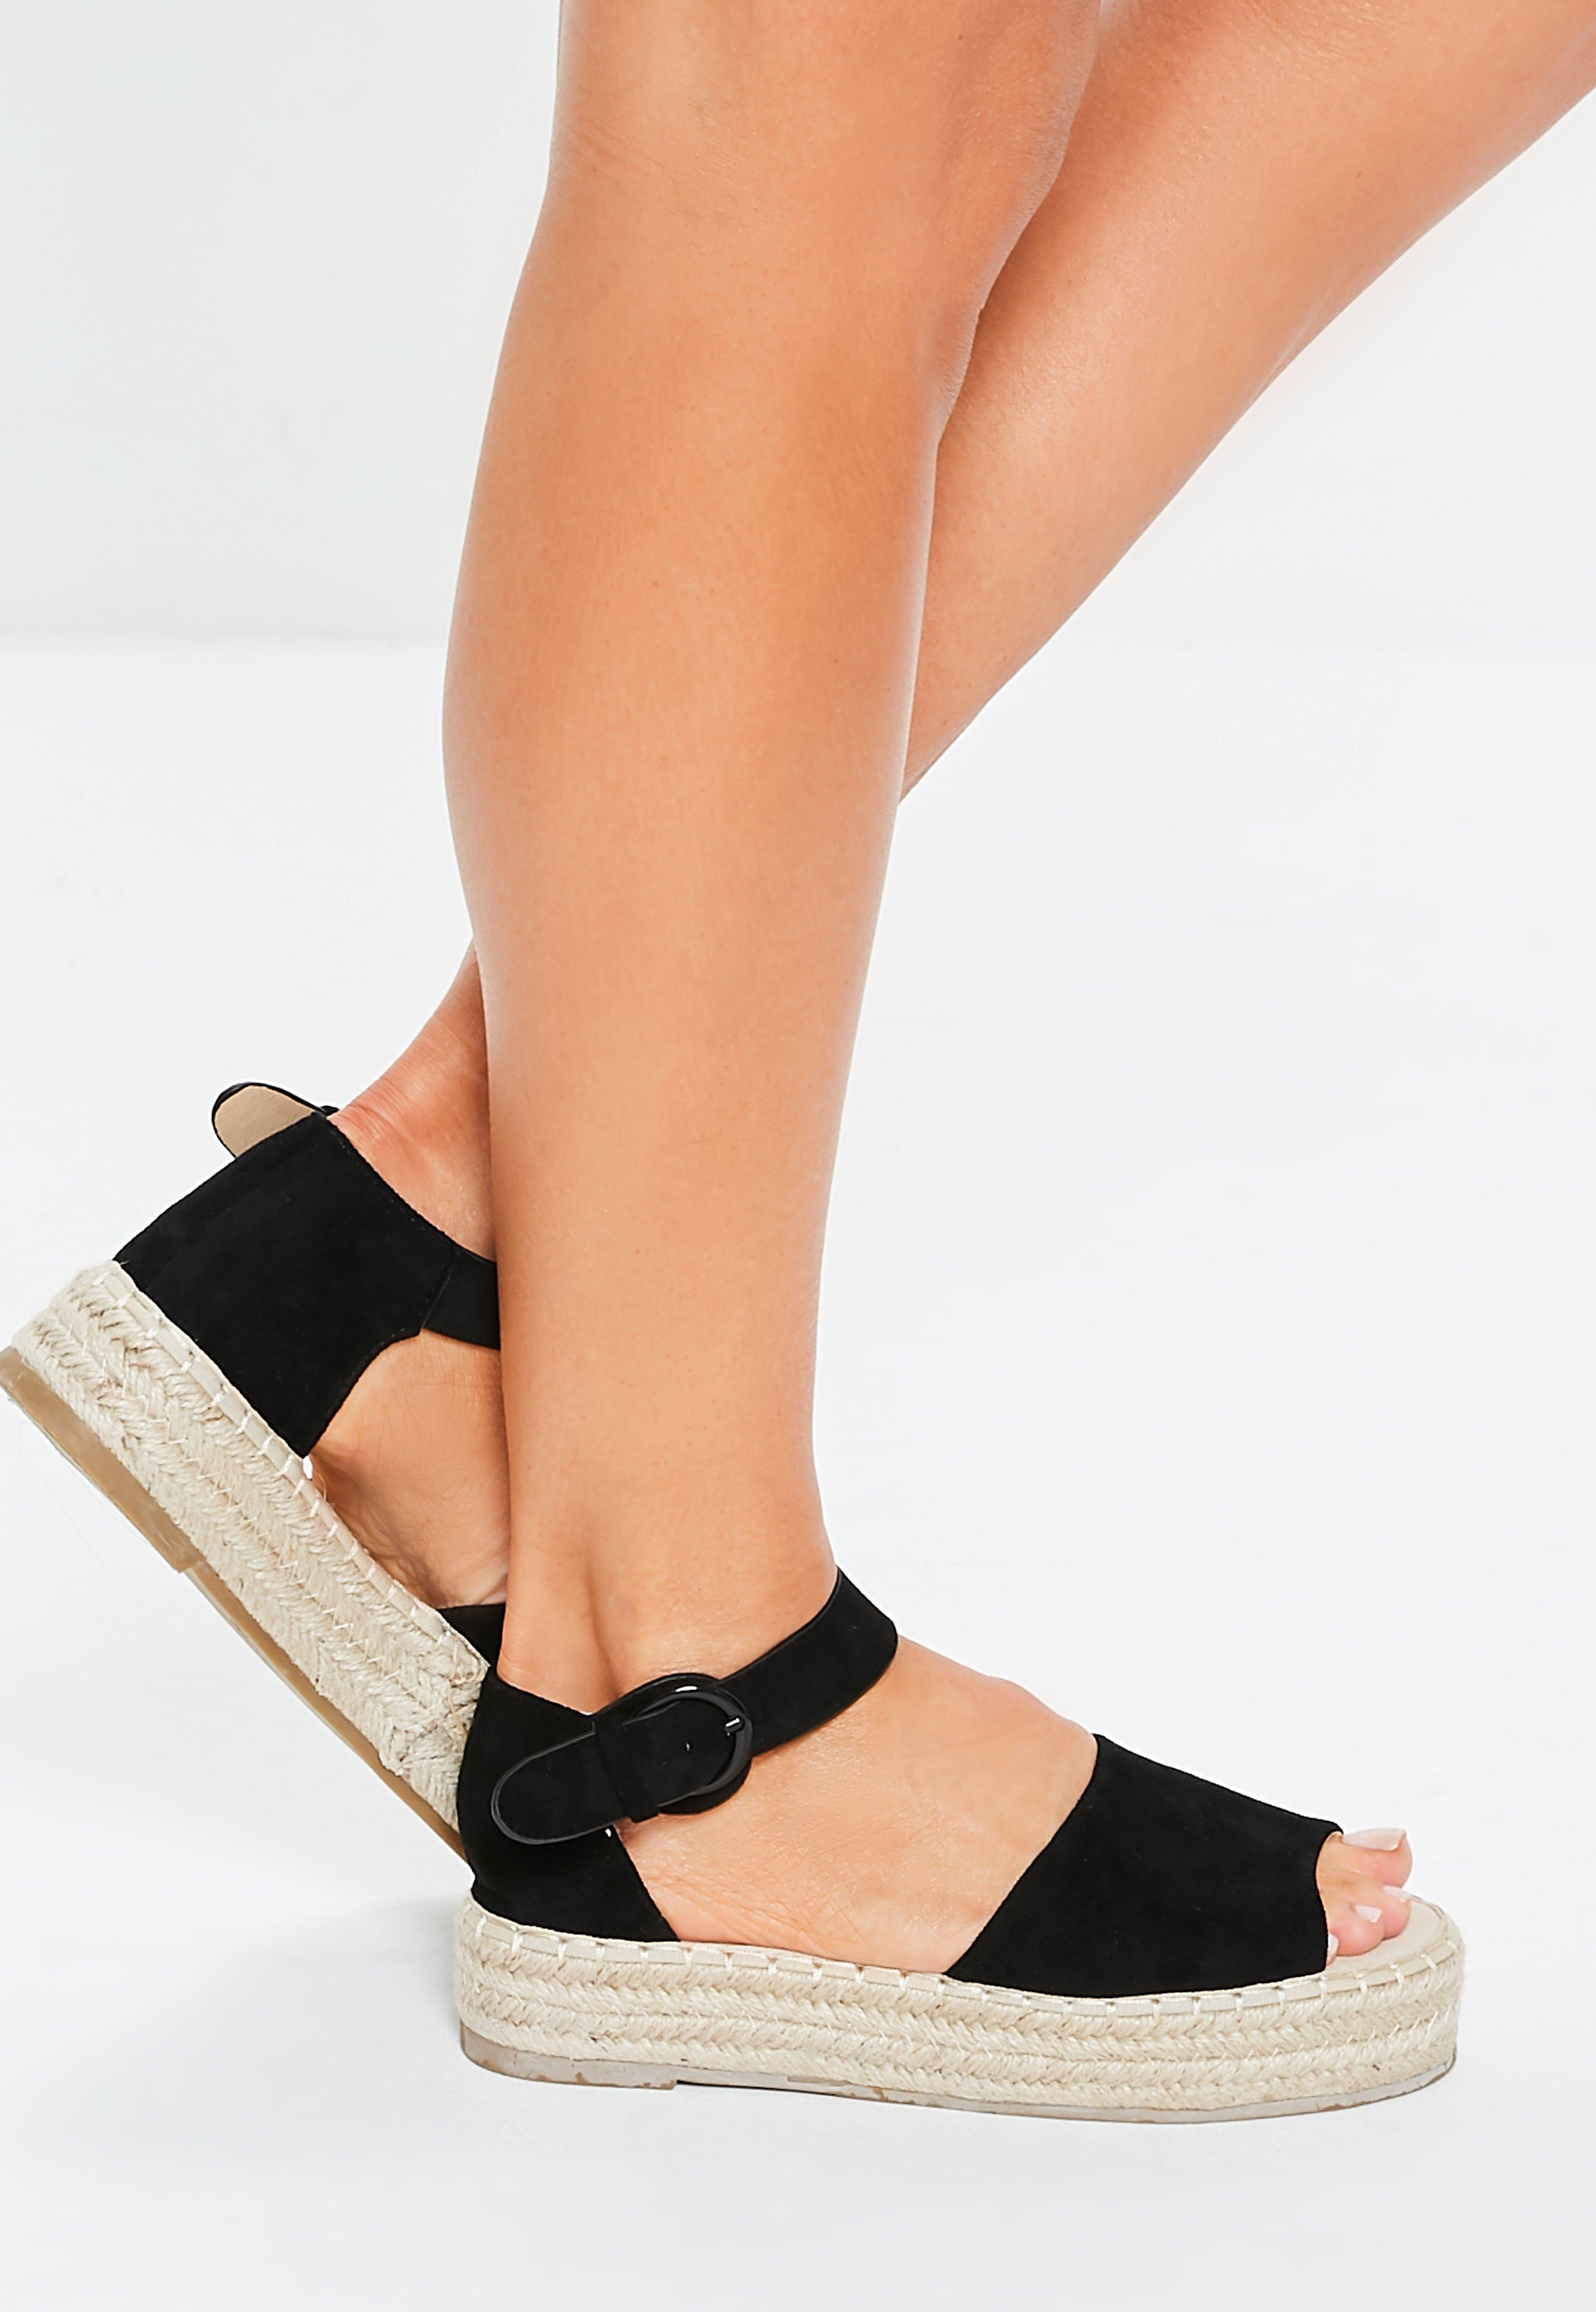 7c6d8e890 Women s Flat Sandals   Espadrilles - Missguided